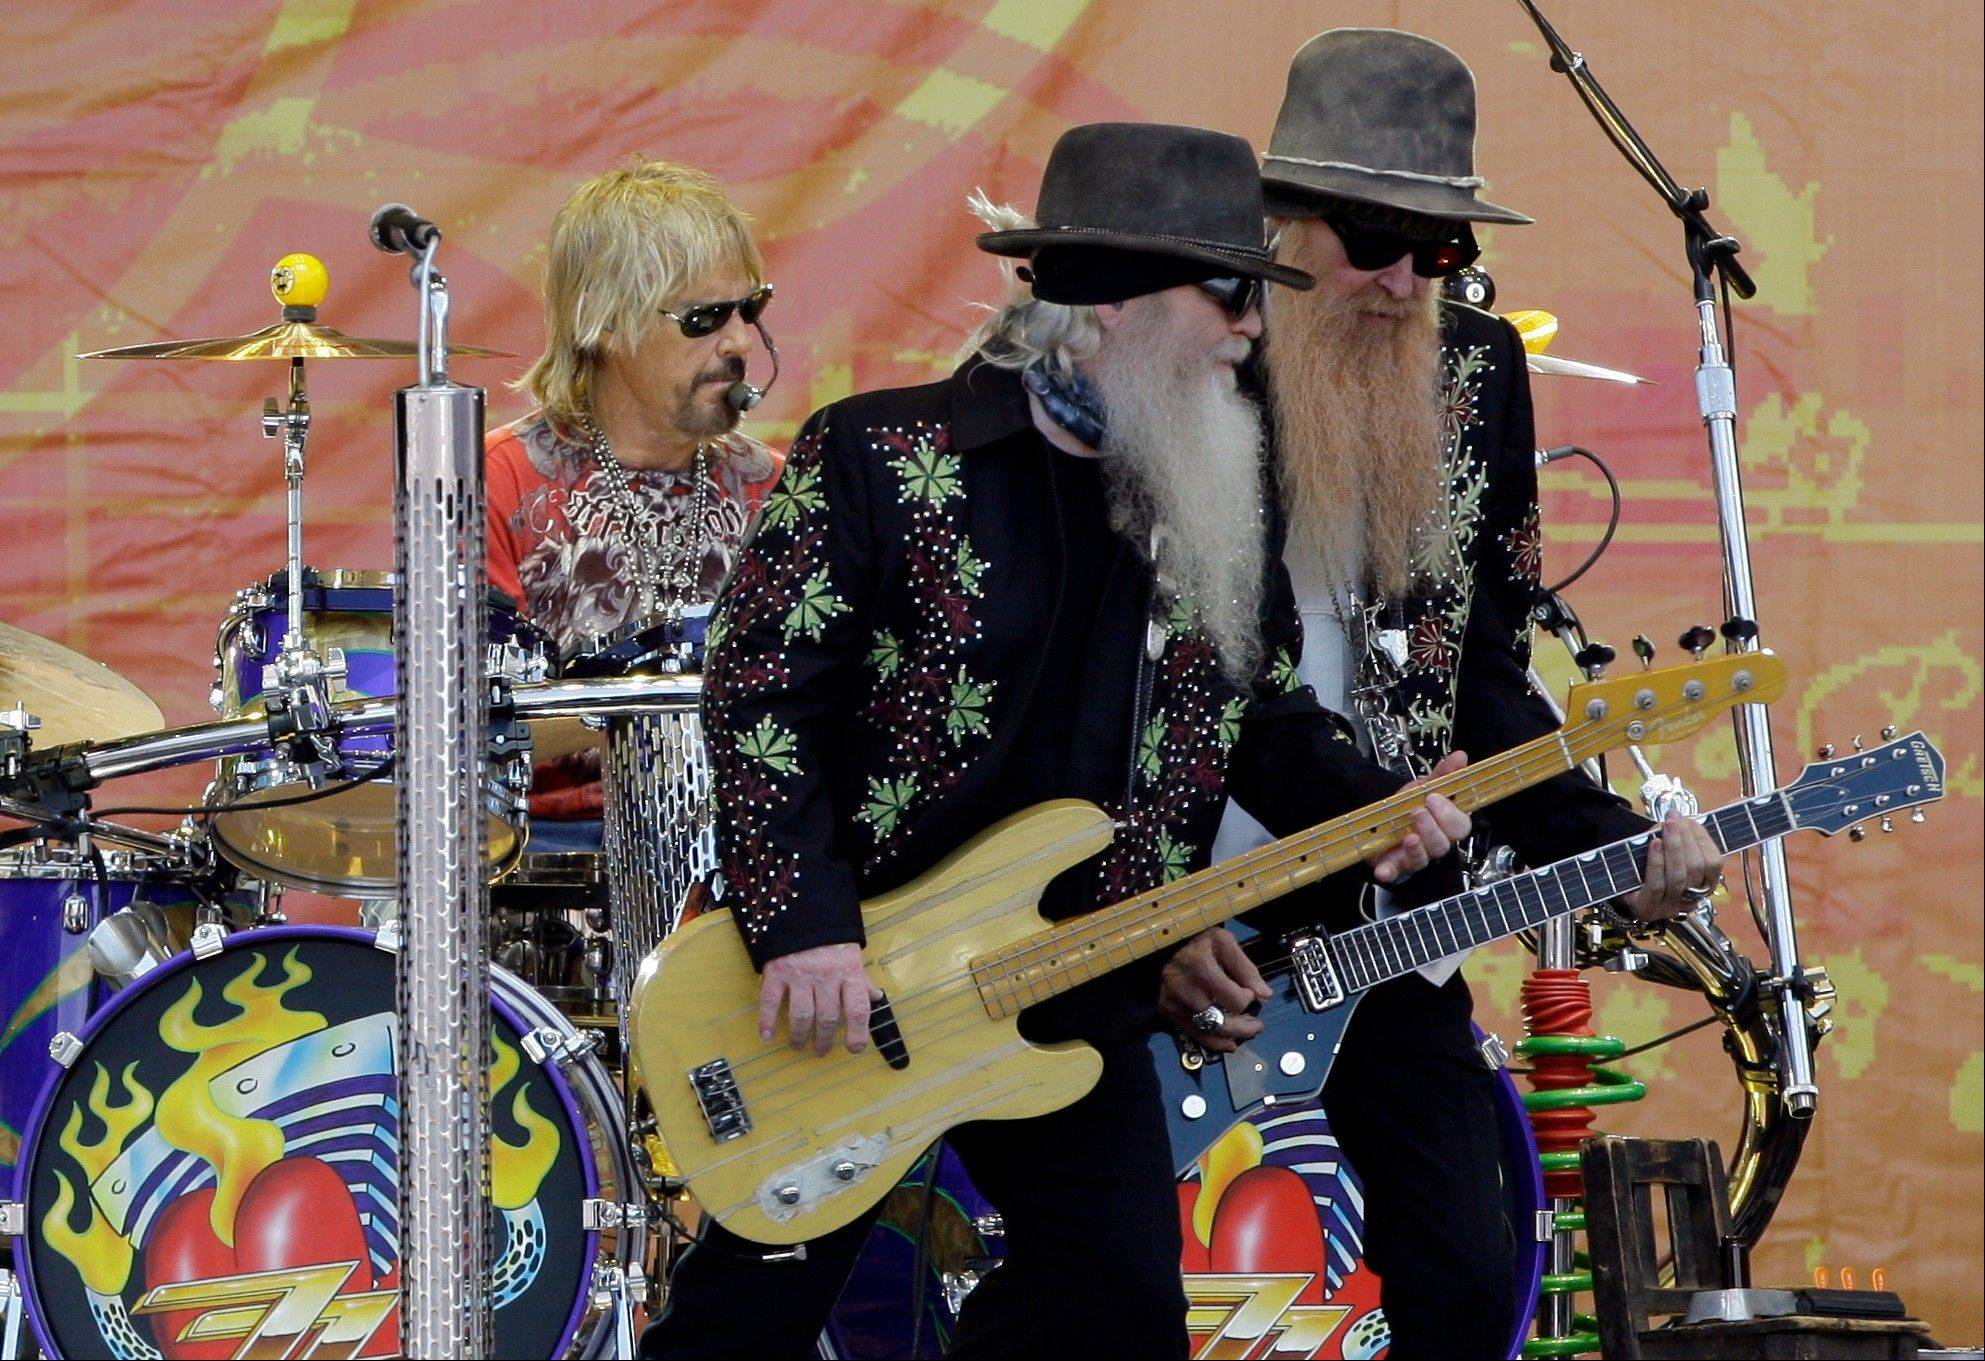 ZZ Top perform will headline Naperville's Ribfest on Sunday, July 1.